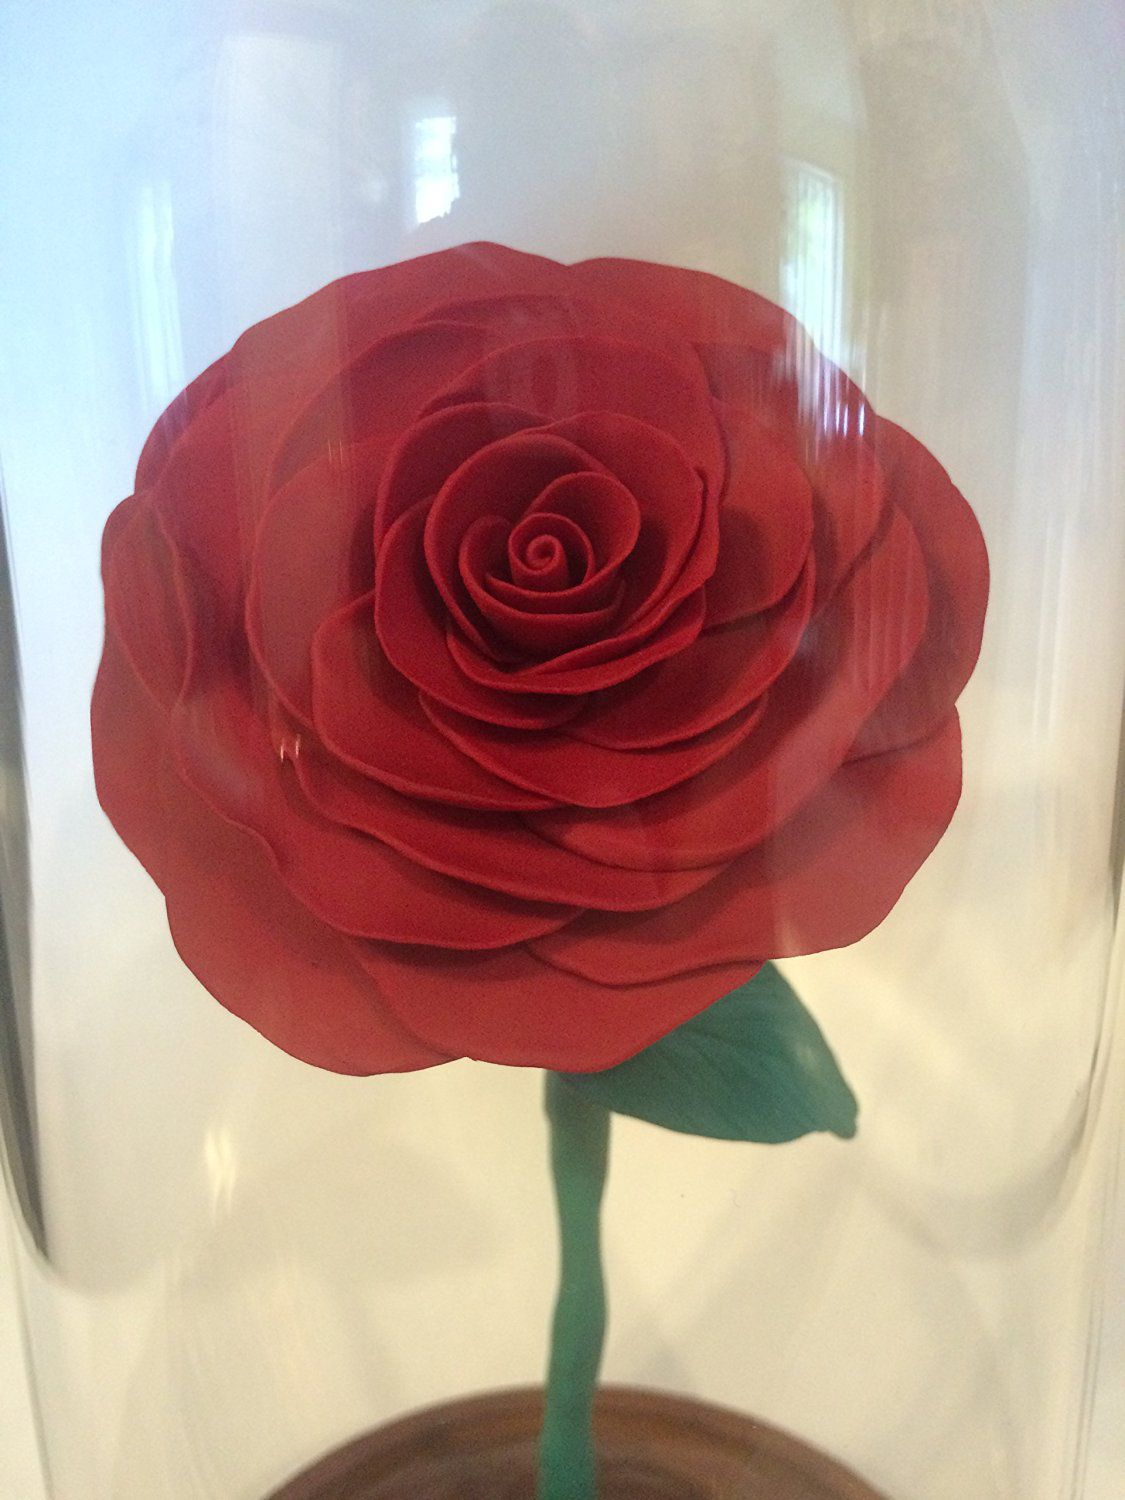 Beauty and the Beast Rose, Red Rose, Enchanted Rose, Rose in a large dome, Rose in Glass